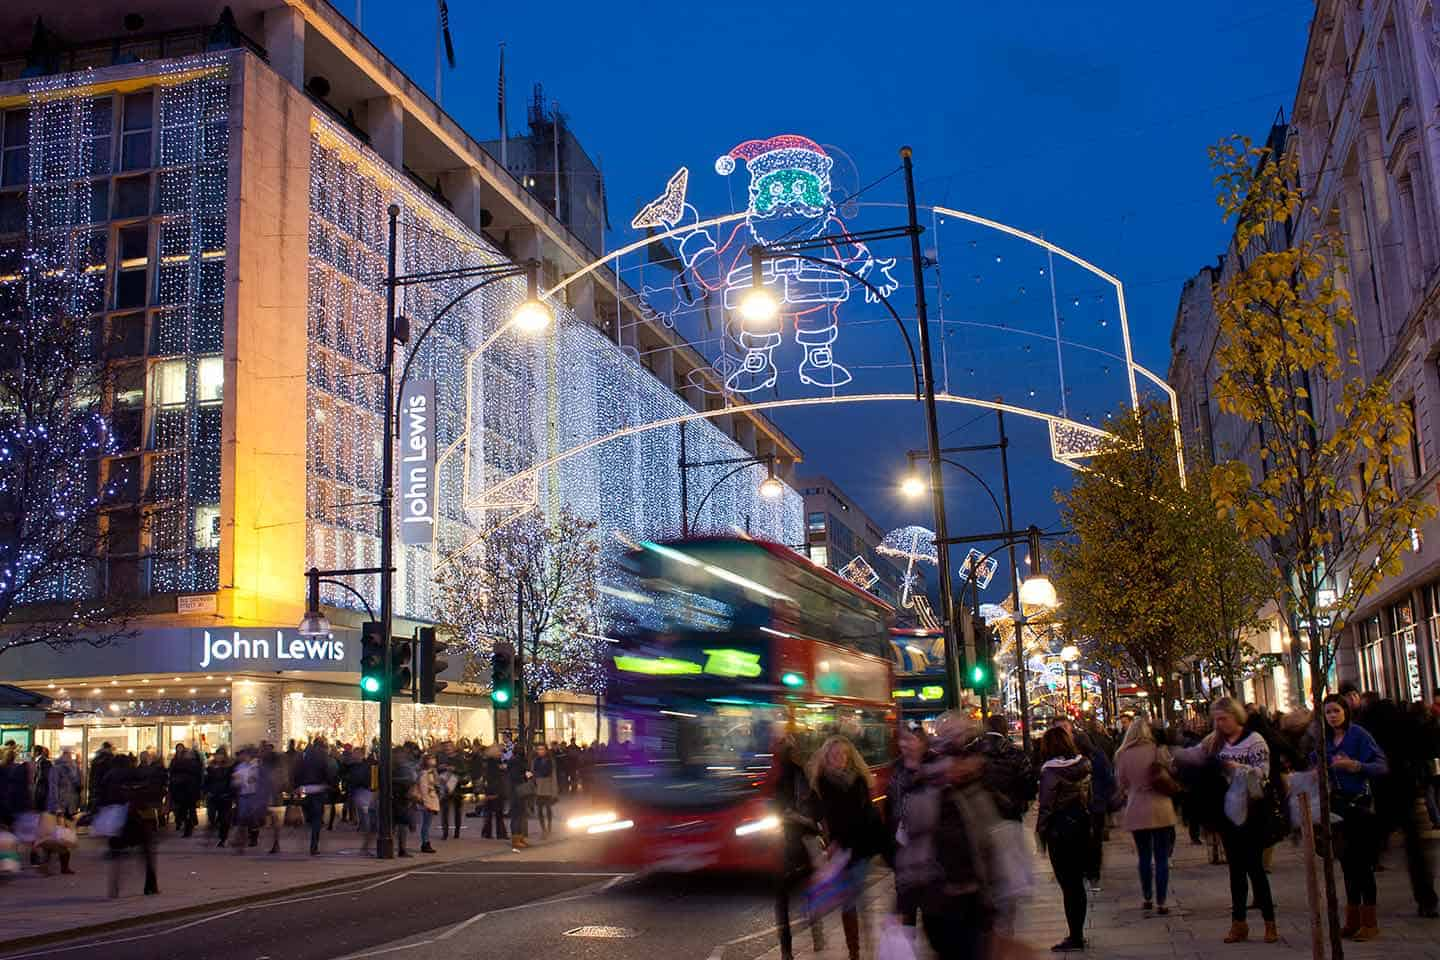 Image of London's Oxford Street at Christmas